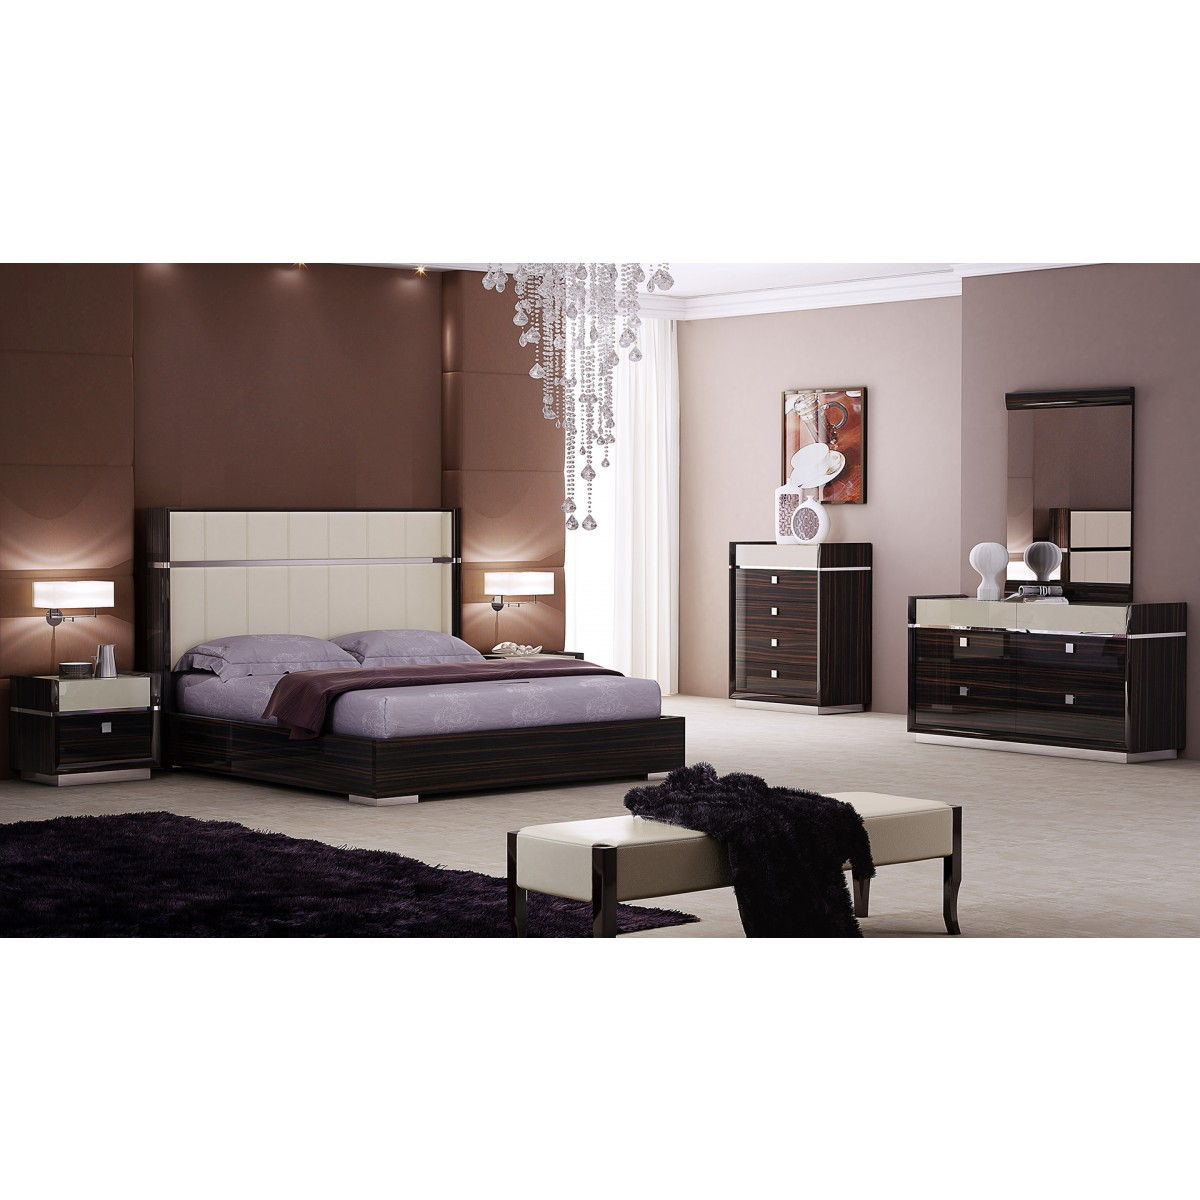 American Eagle Furniture B P100 Brown/Ivory Ebony King Size Sleigh Bed  Bedroom Set